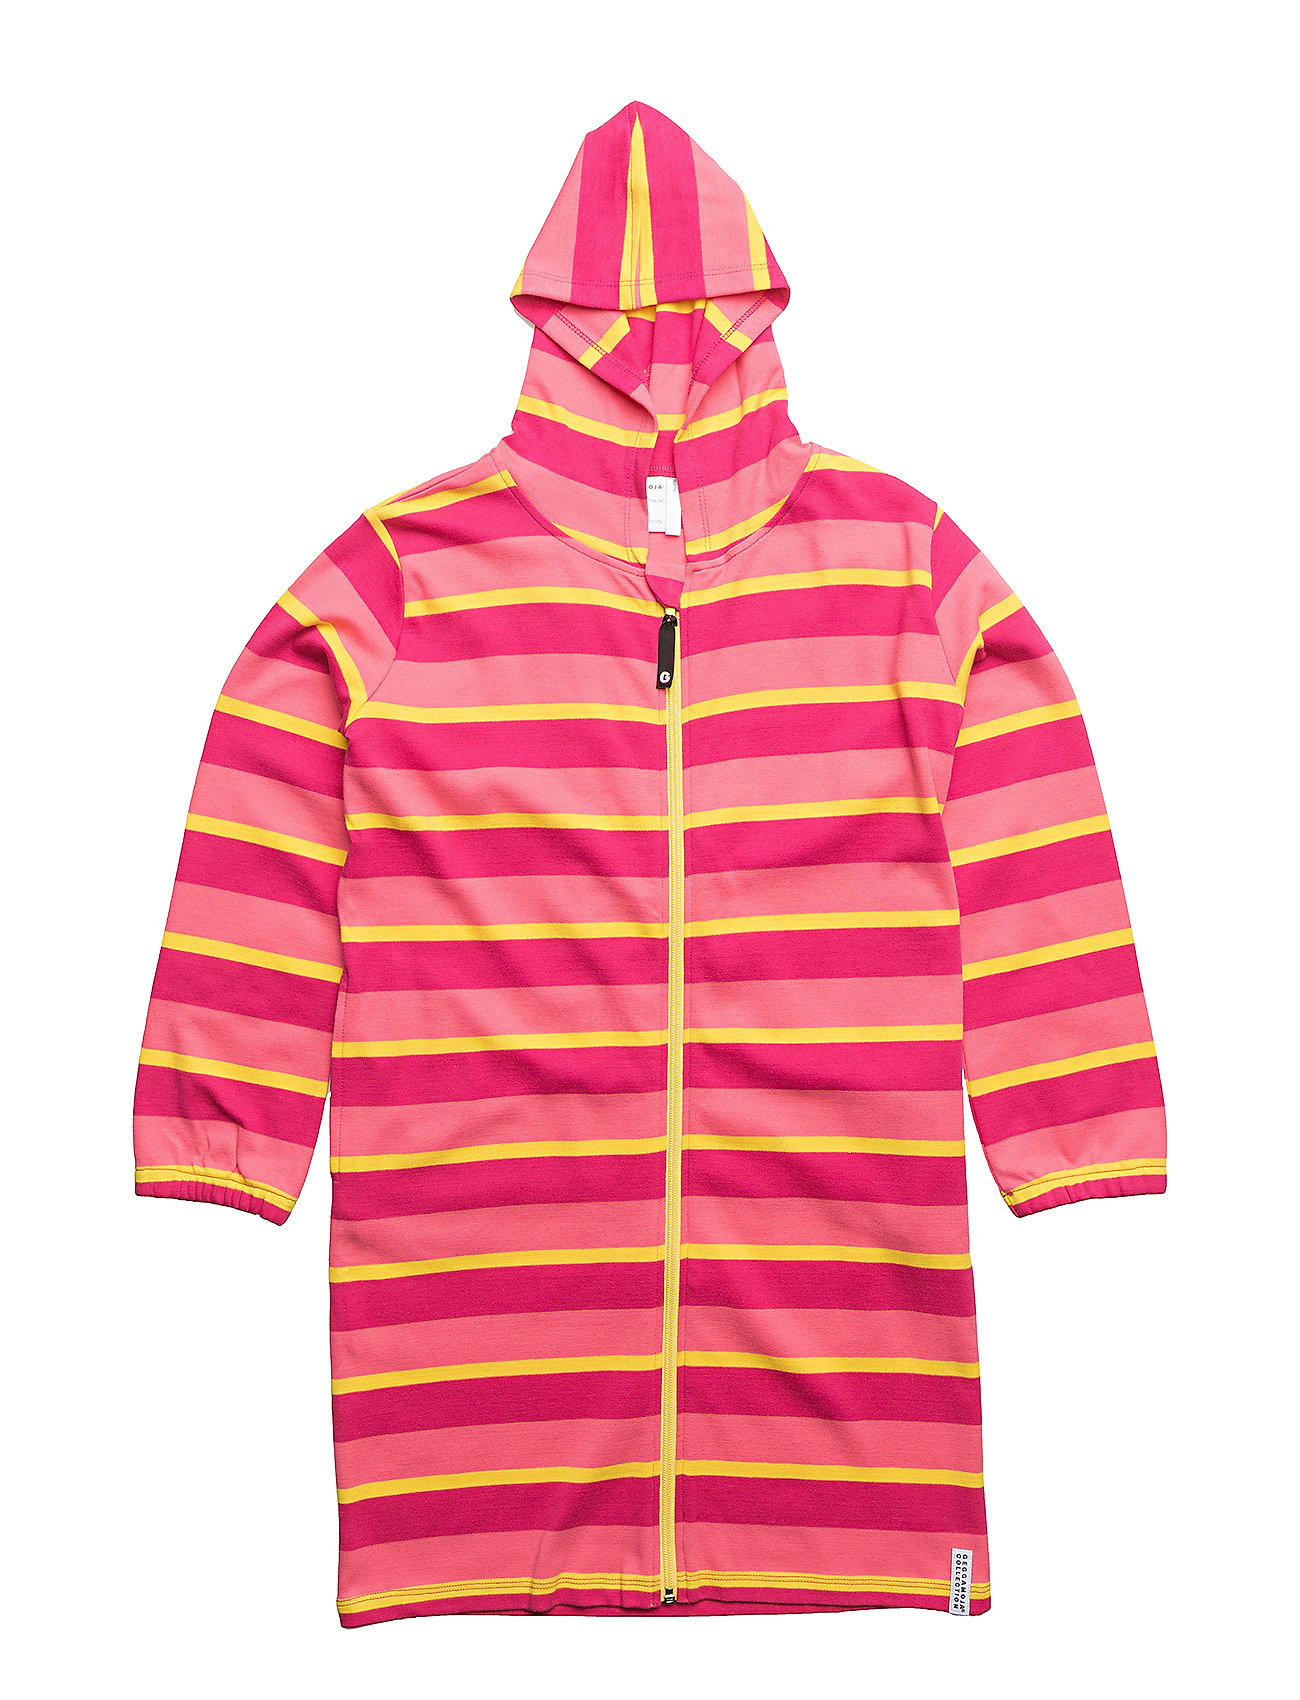 Geggamoja Bathrobe - PINK/YELLOW/CERISE